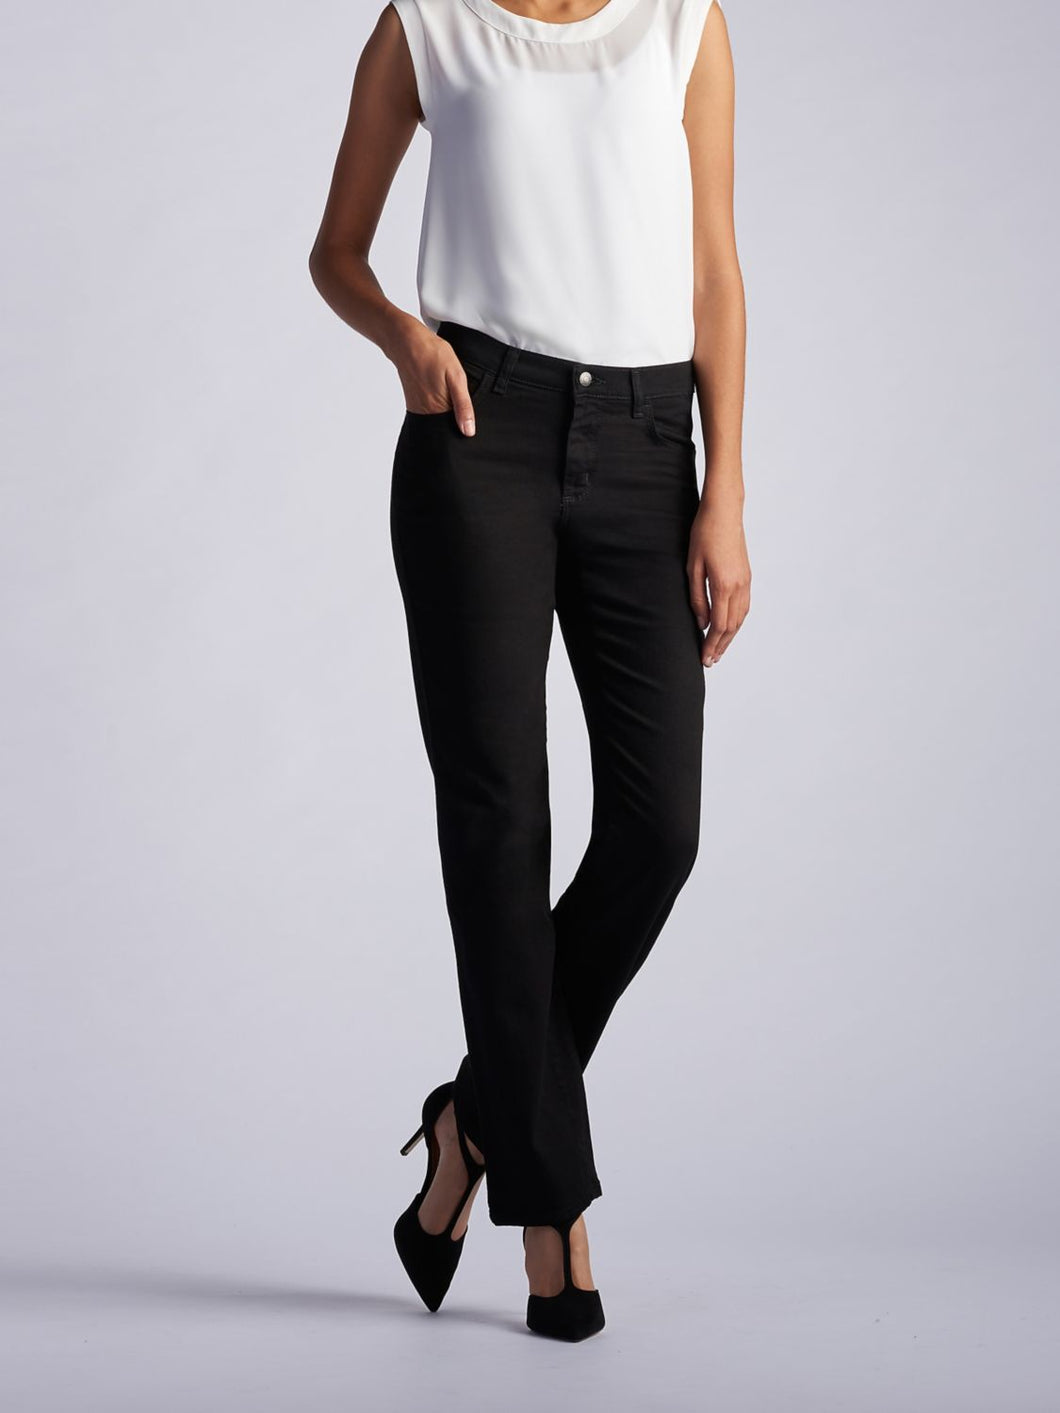 Stretch Relaxed Fit Straight Leg Jean in Black from Front View